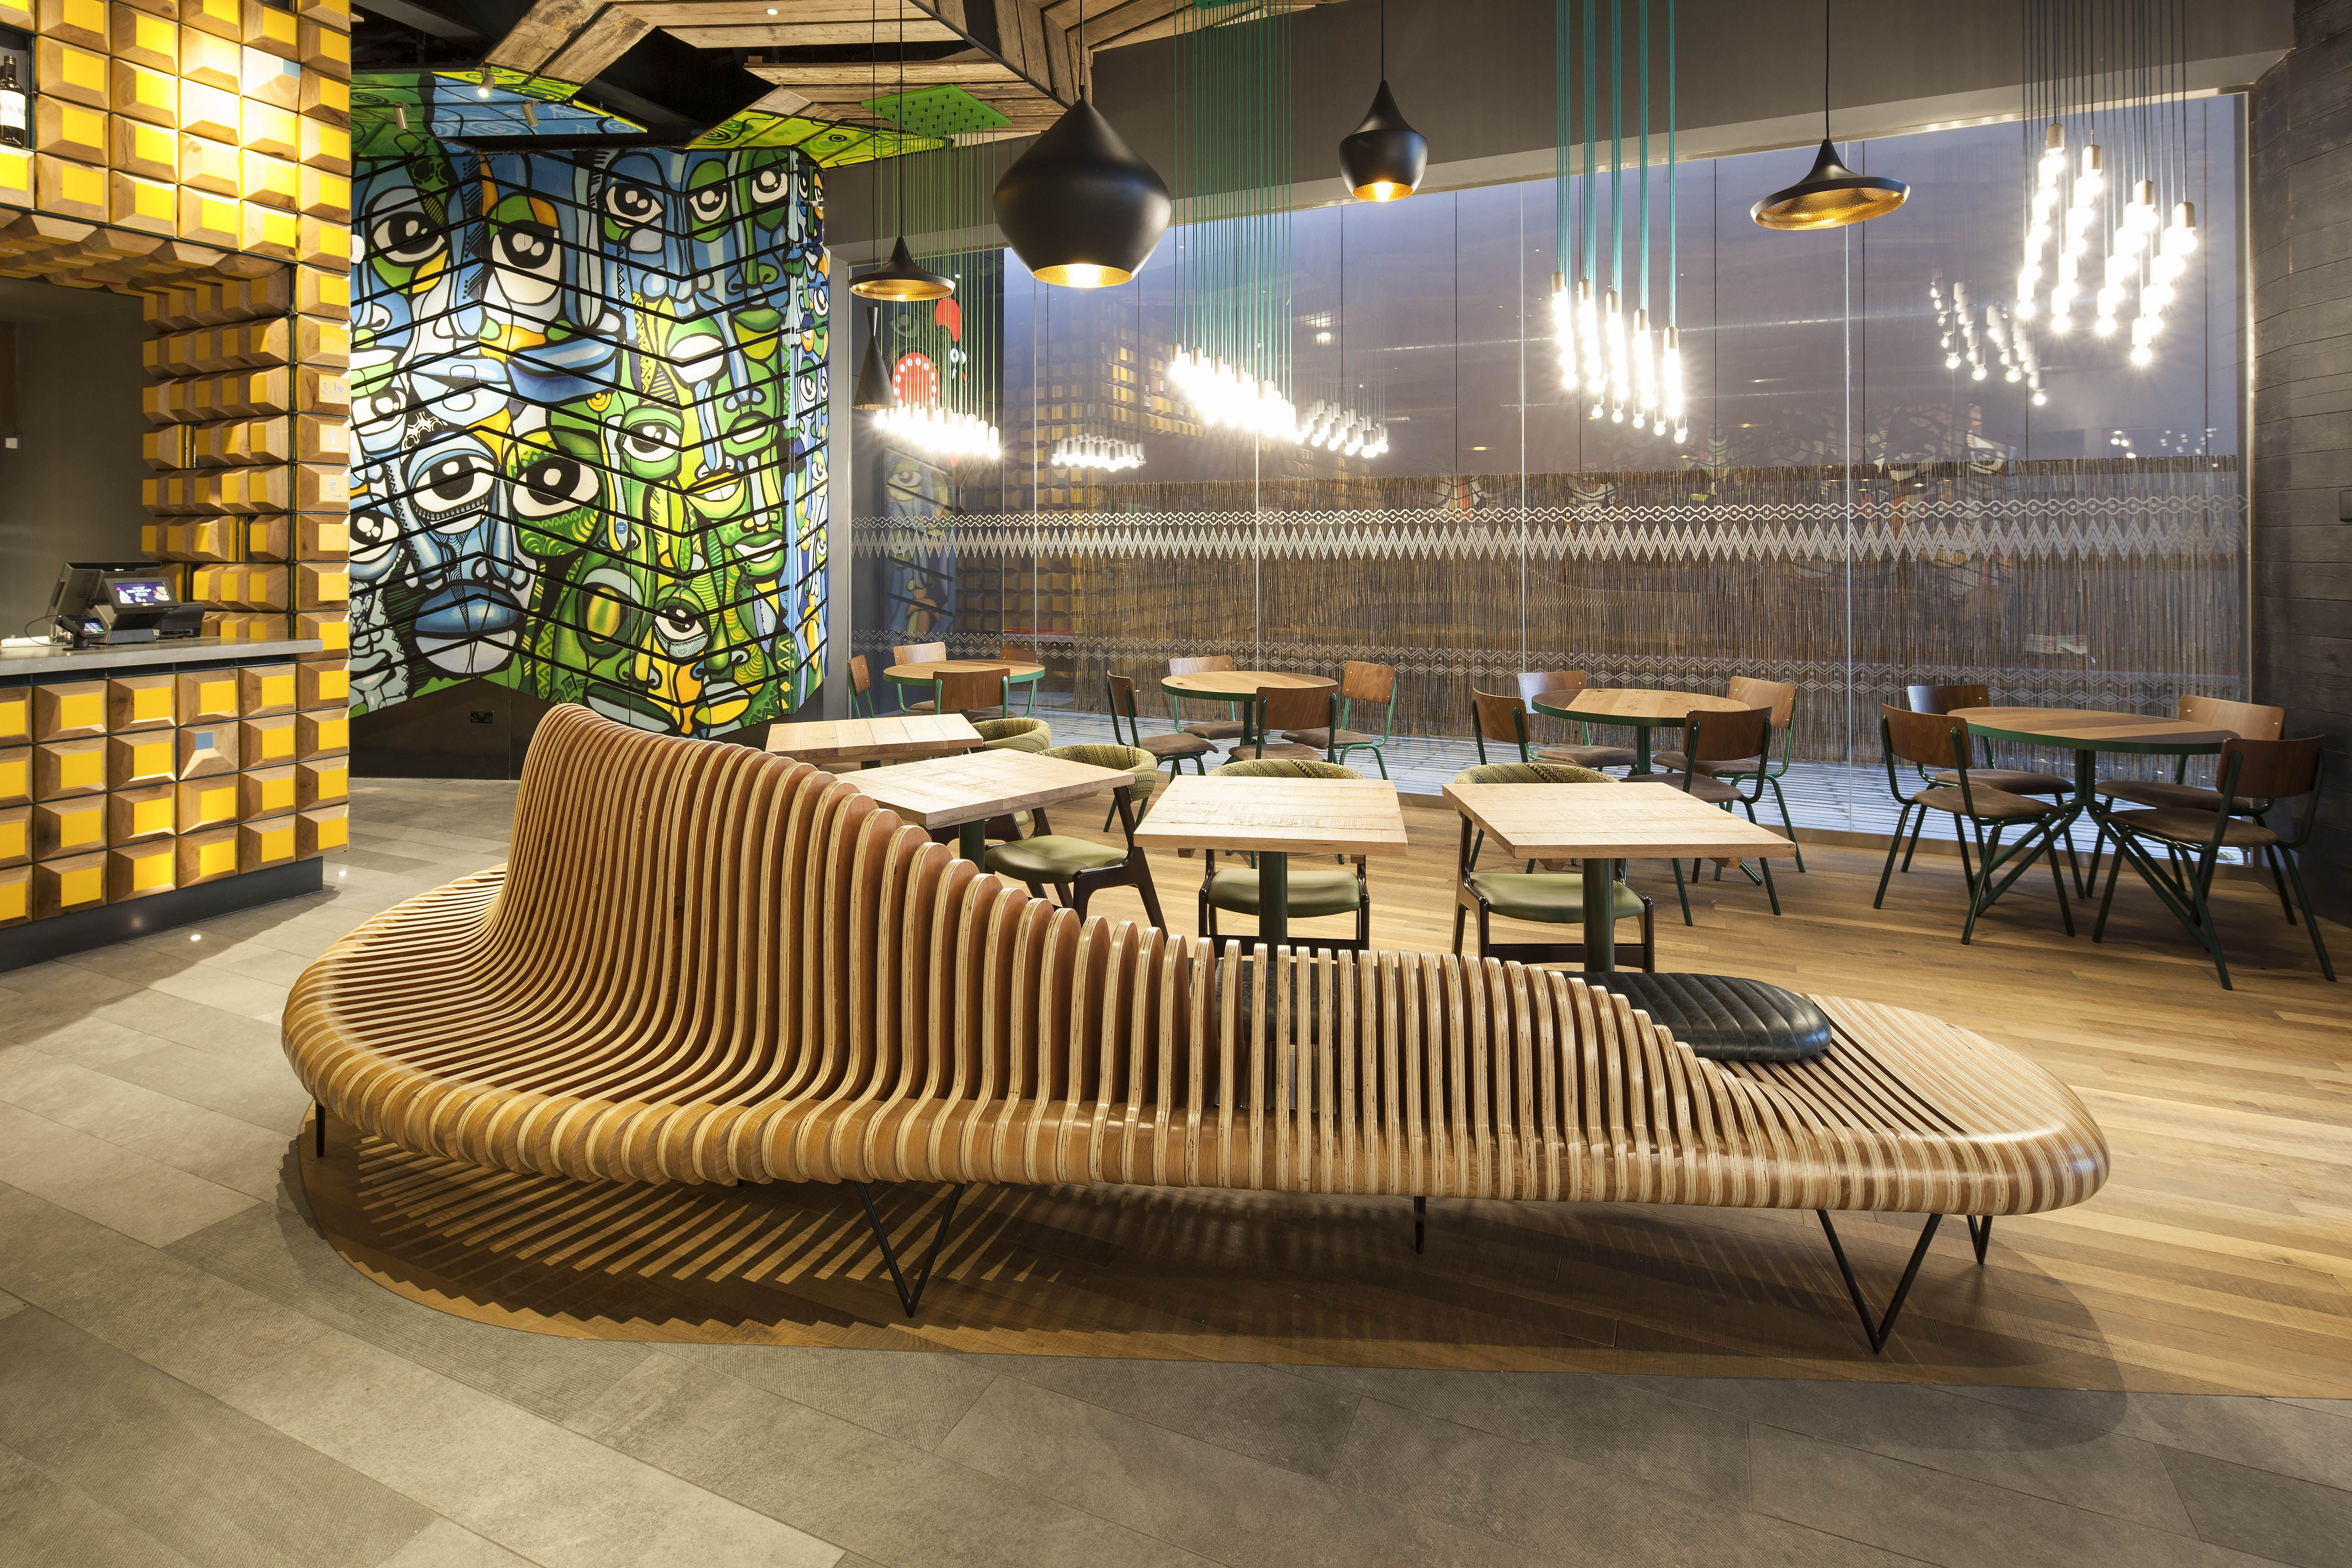 Project: Nandos Teesside  Location: Teesside  Client: Nandos  Interior Design: STAC Architecture  Lighting Design: Enigma Lighting  Enigma Lighting Products Used: Filament Lamps  Images: Rocco Photography